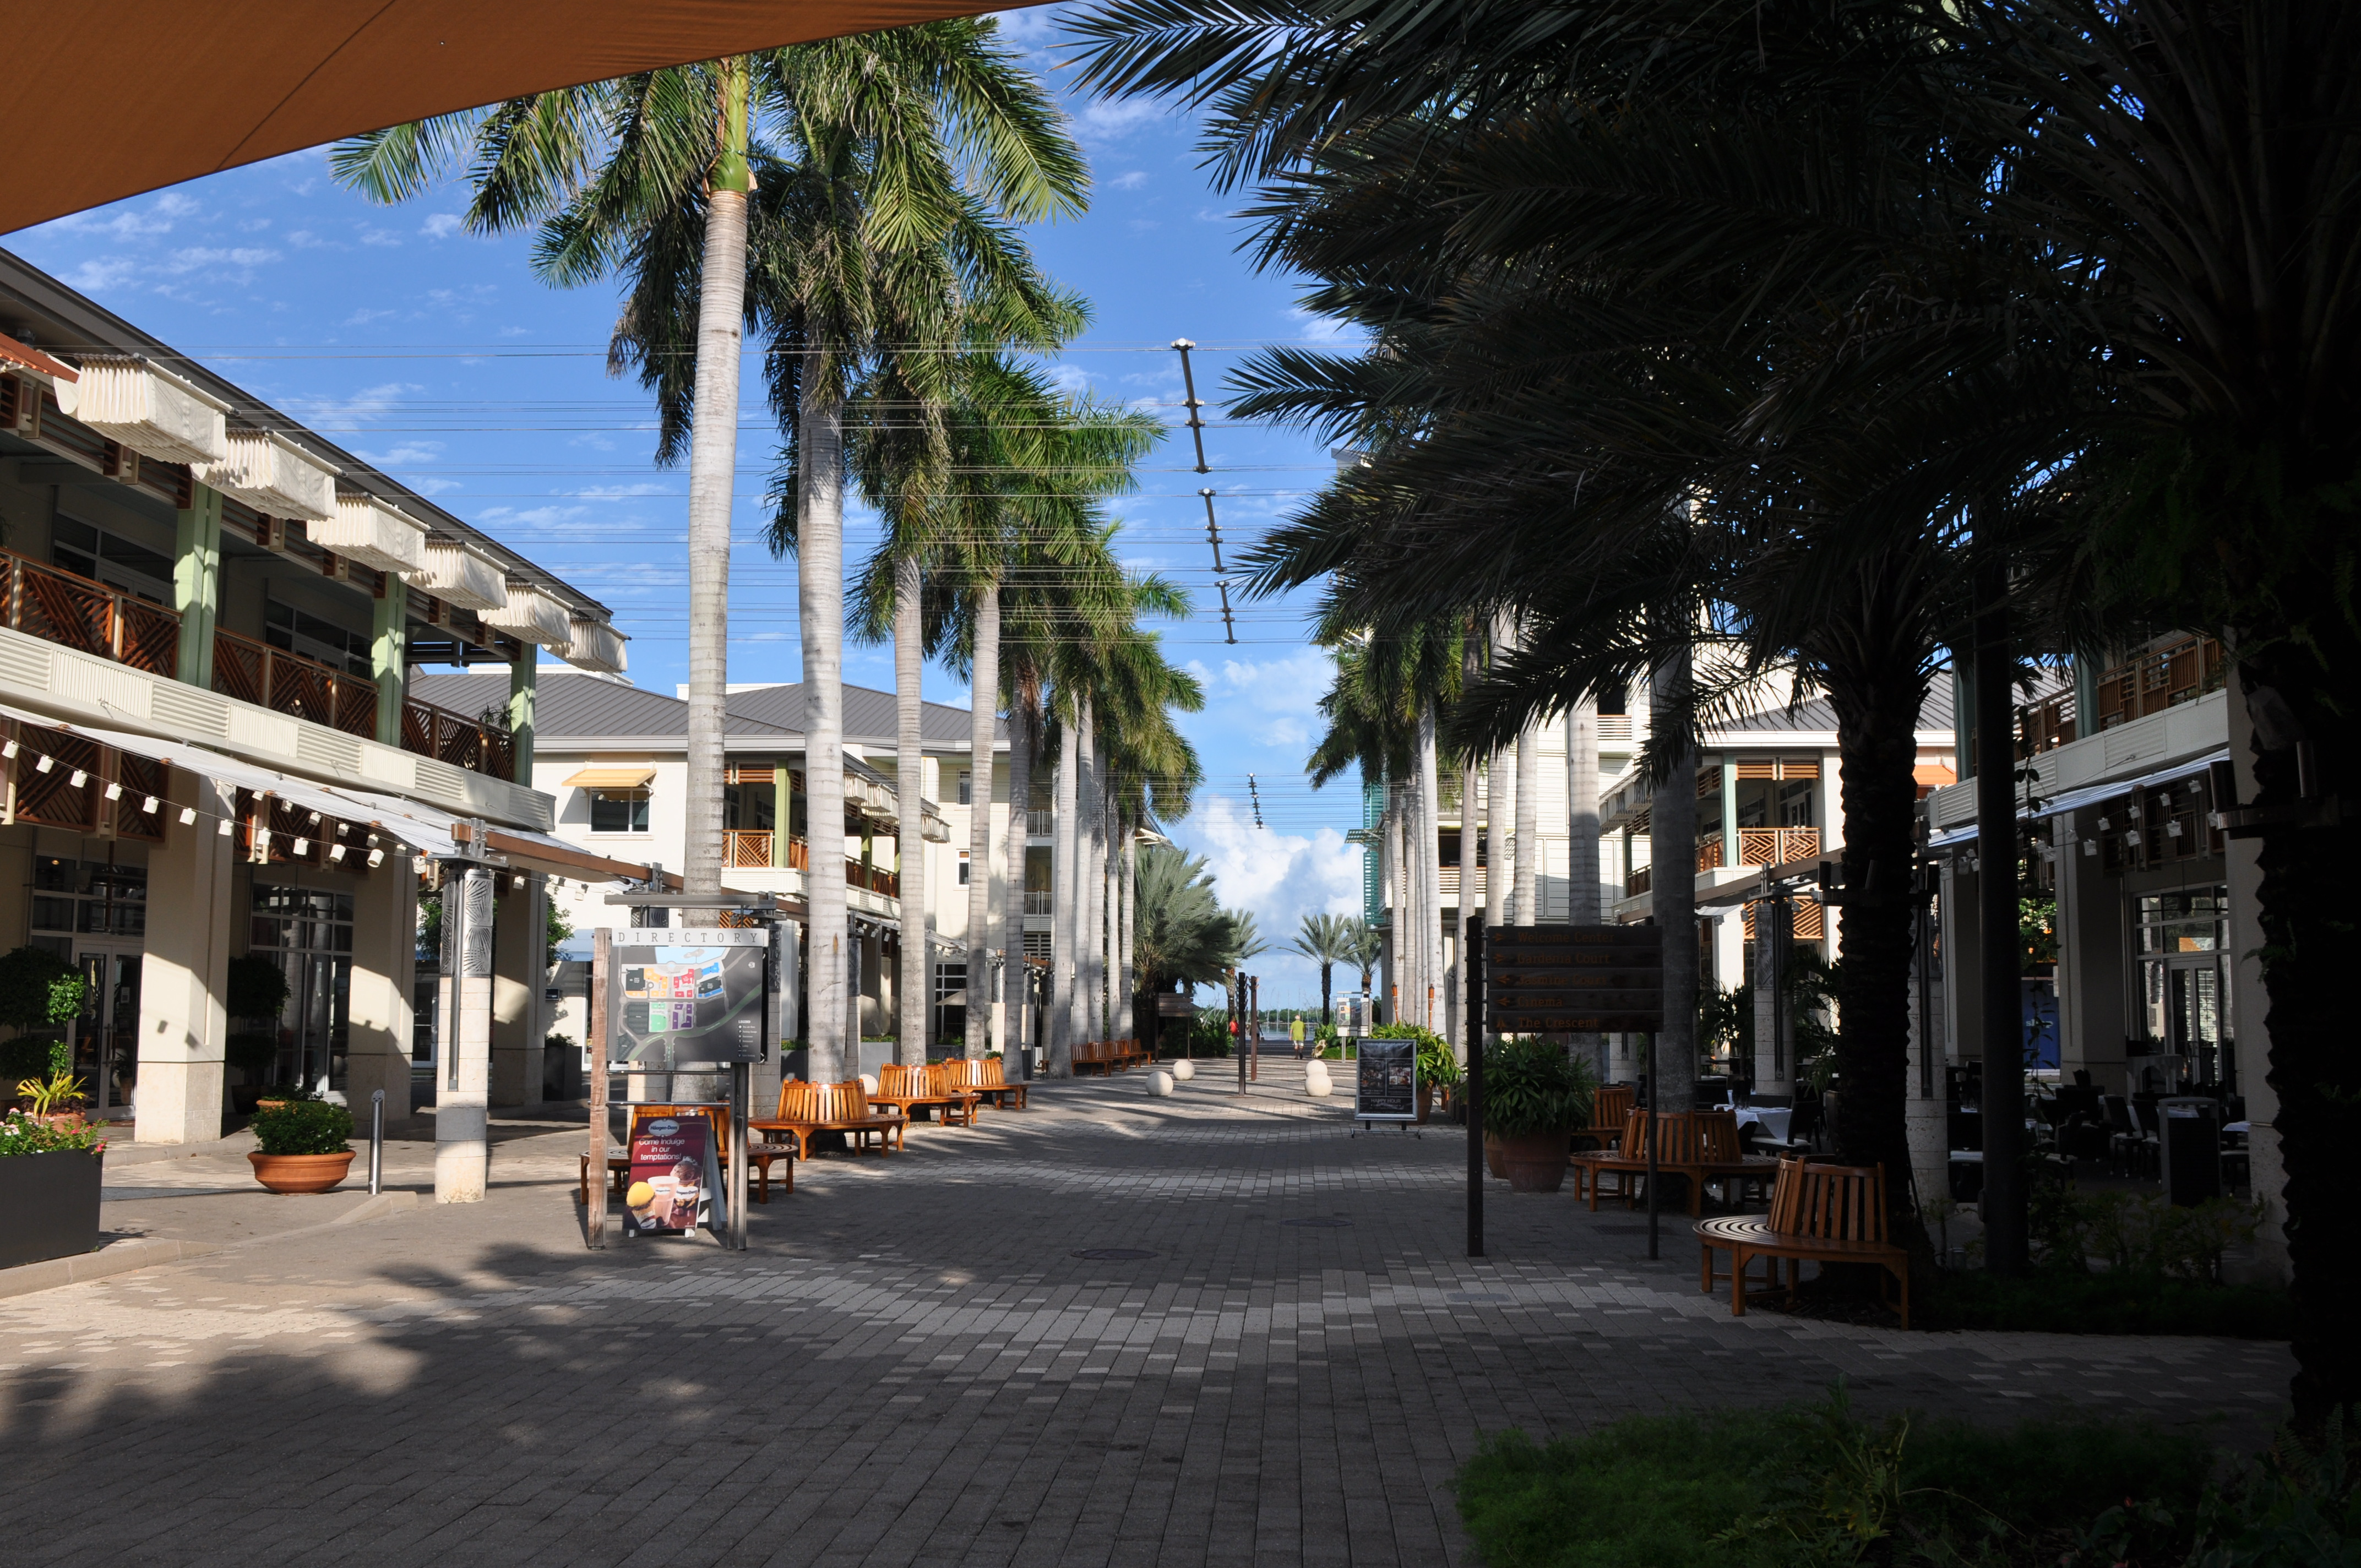 cayman islands streets images